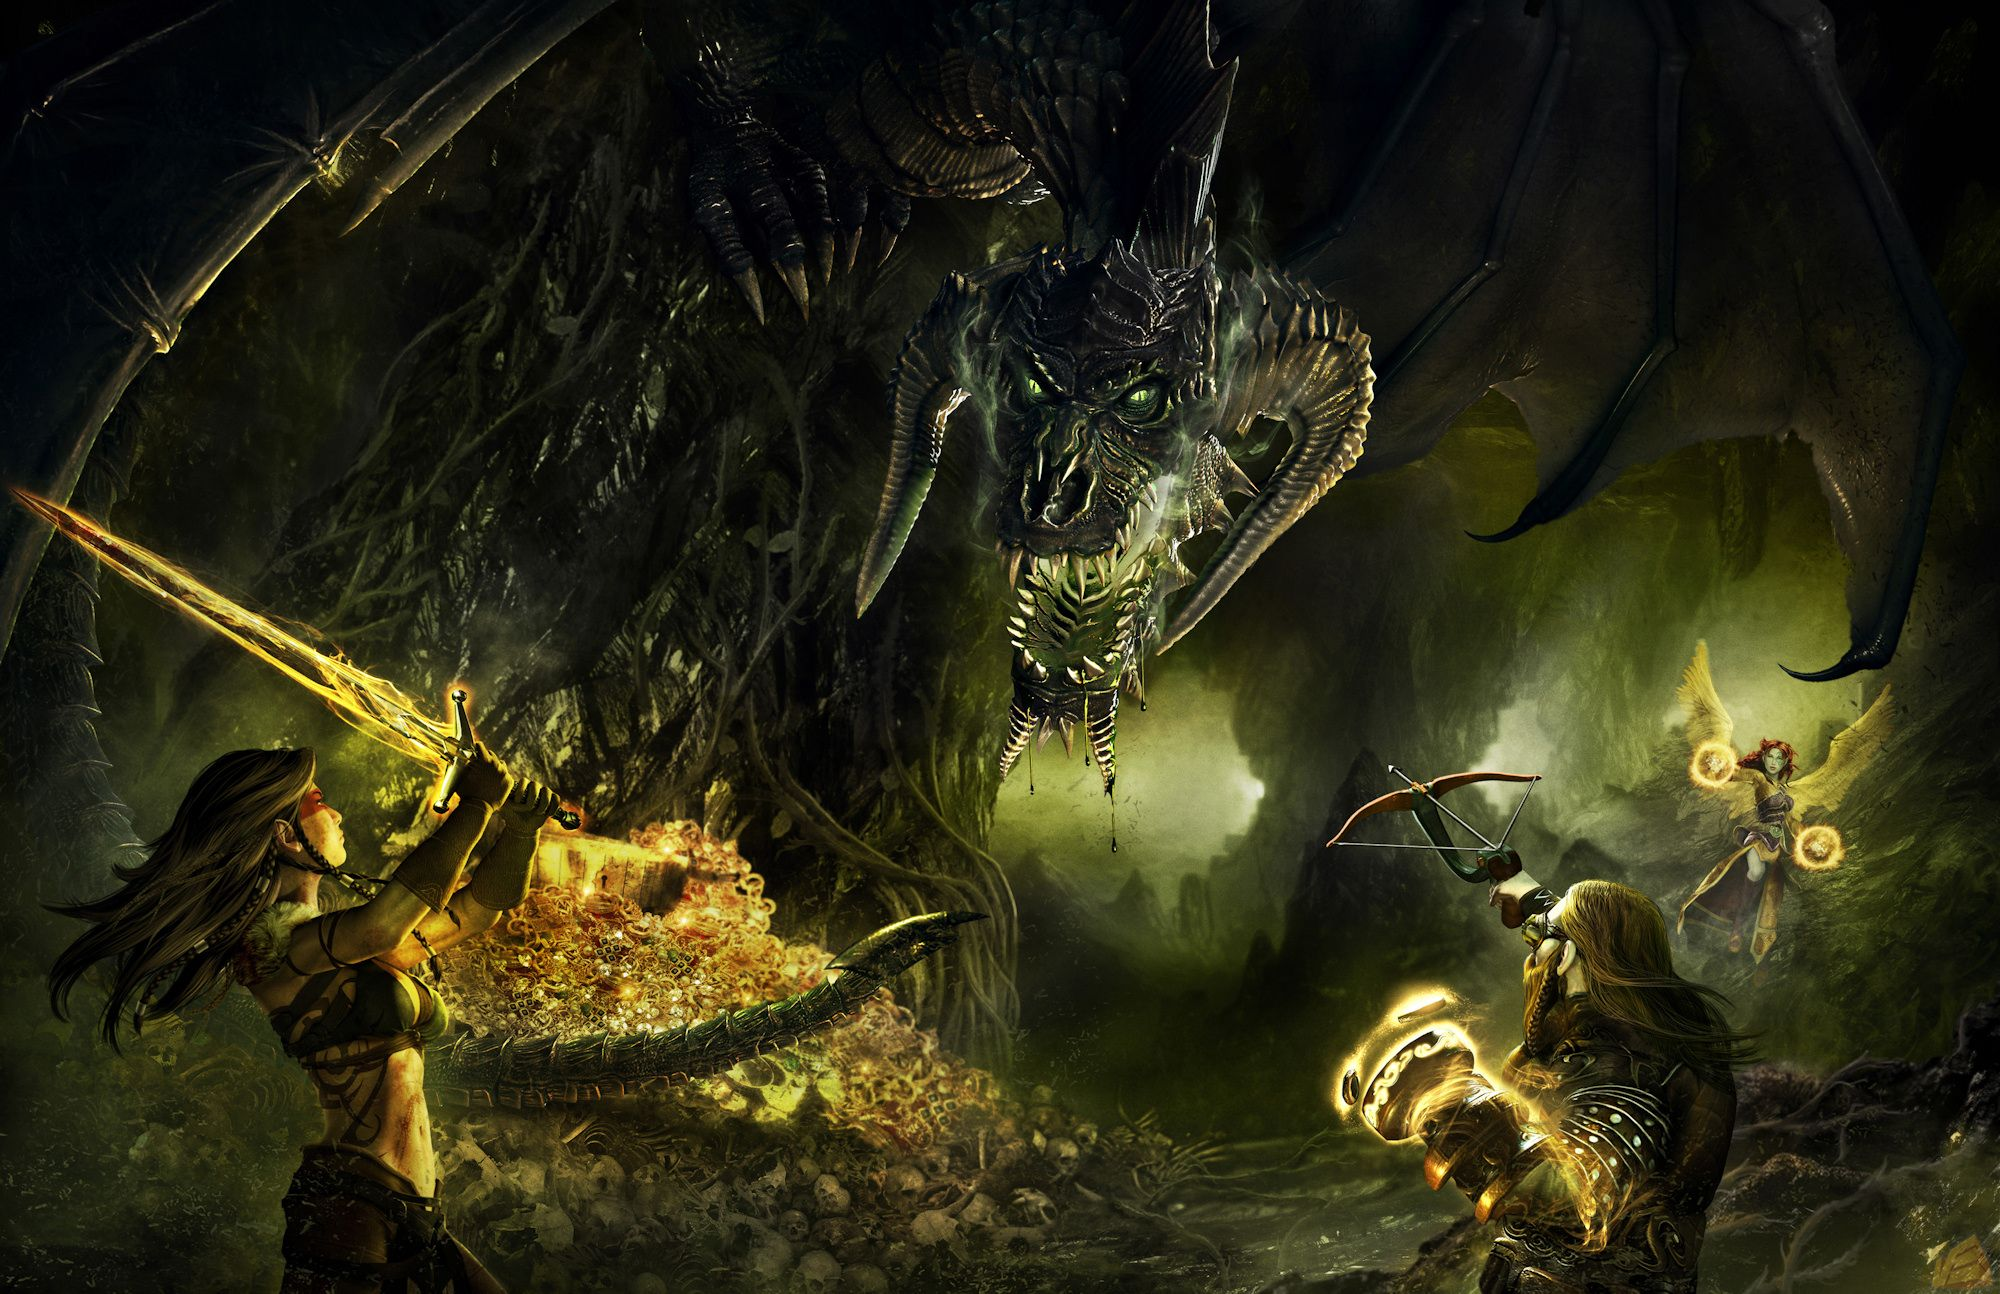 92168_DDO_BLACK_DRAGON_Key_Art.jpg